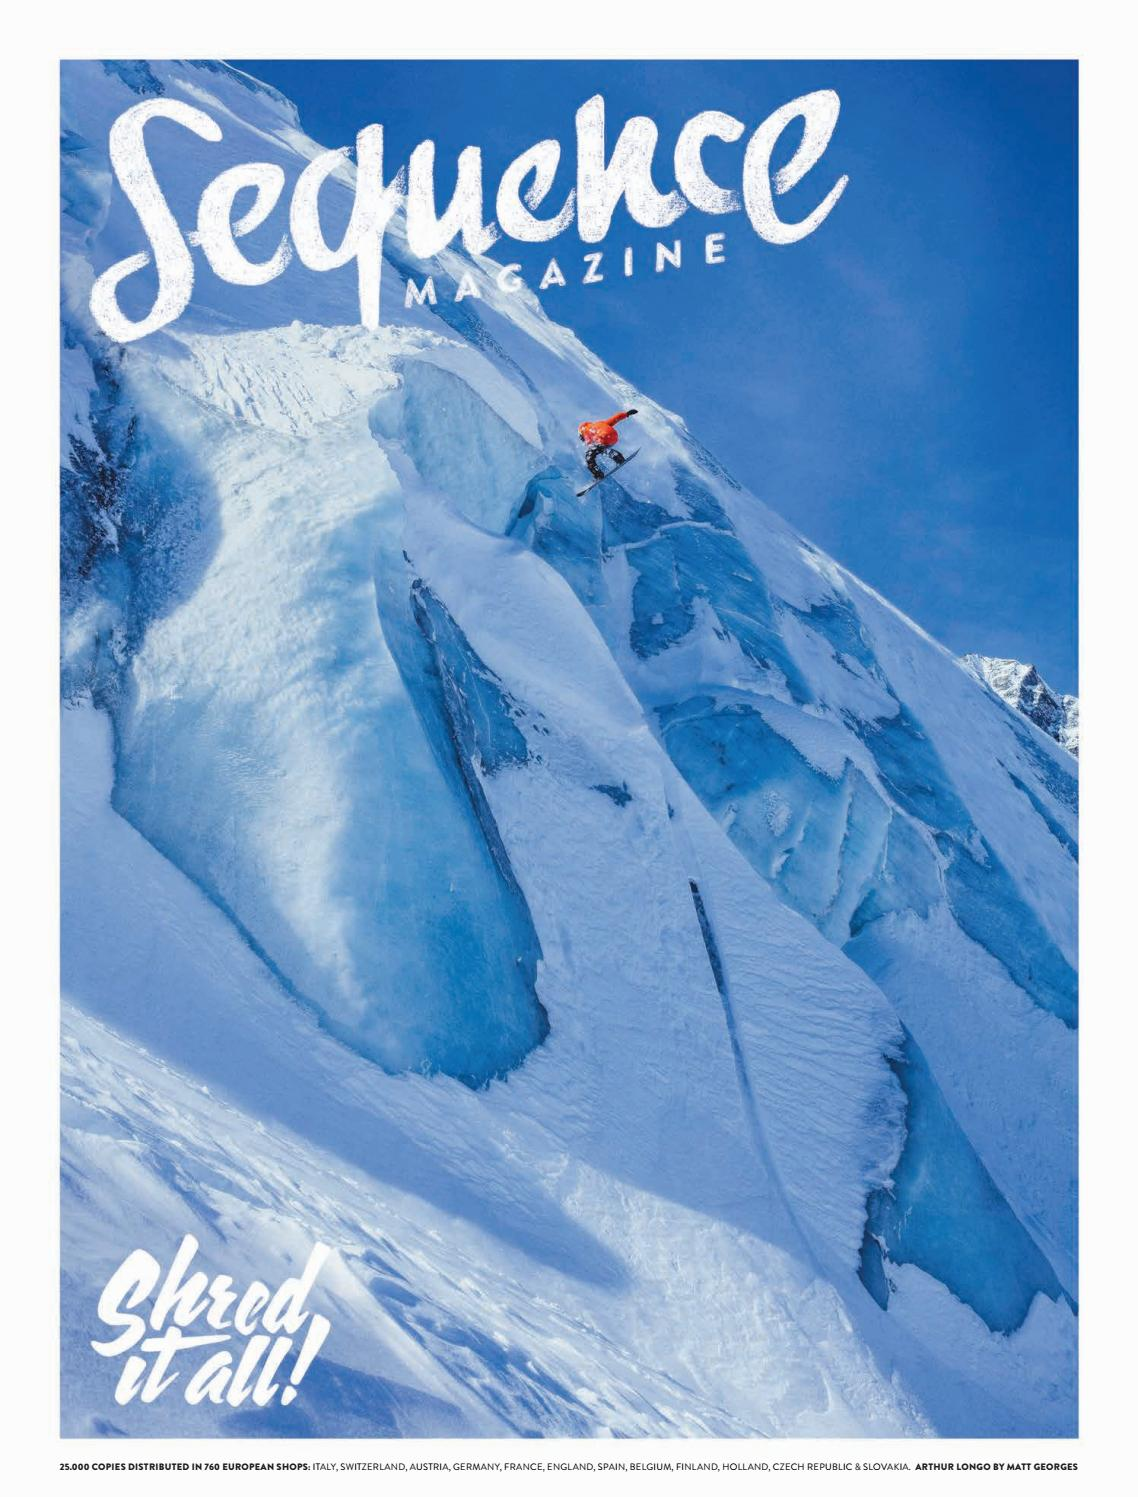 Sequence Magazine 61 En by Hand Communication issuu